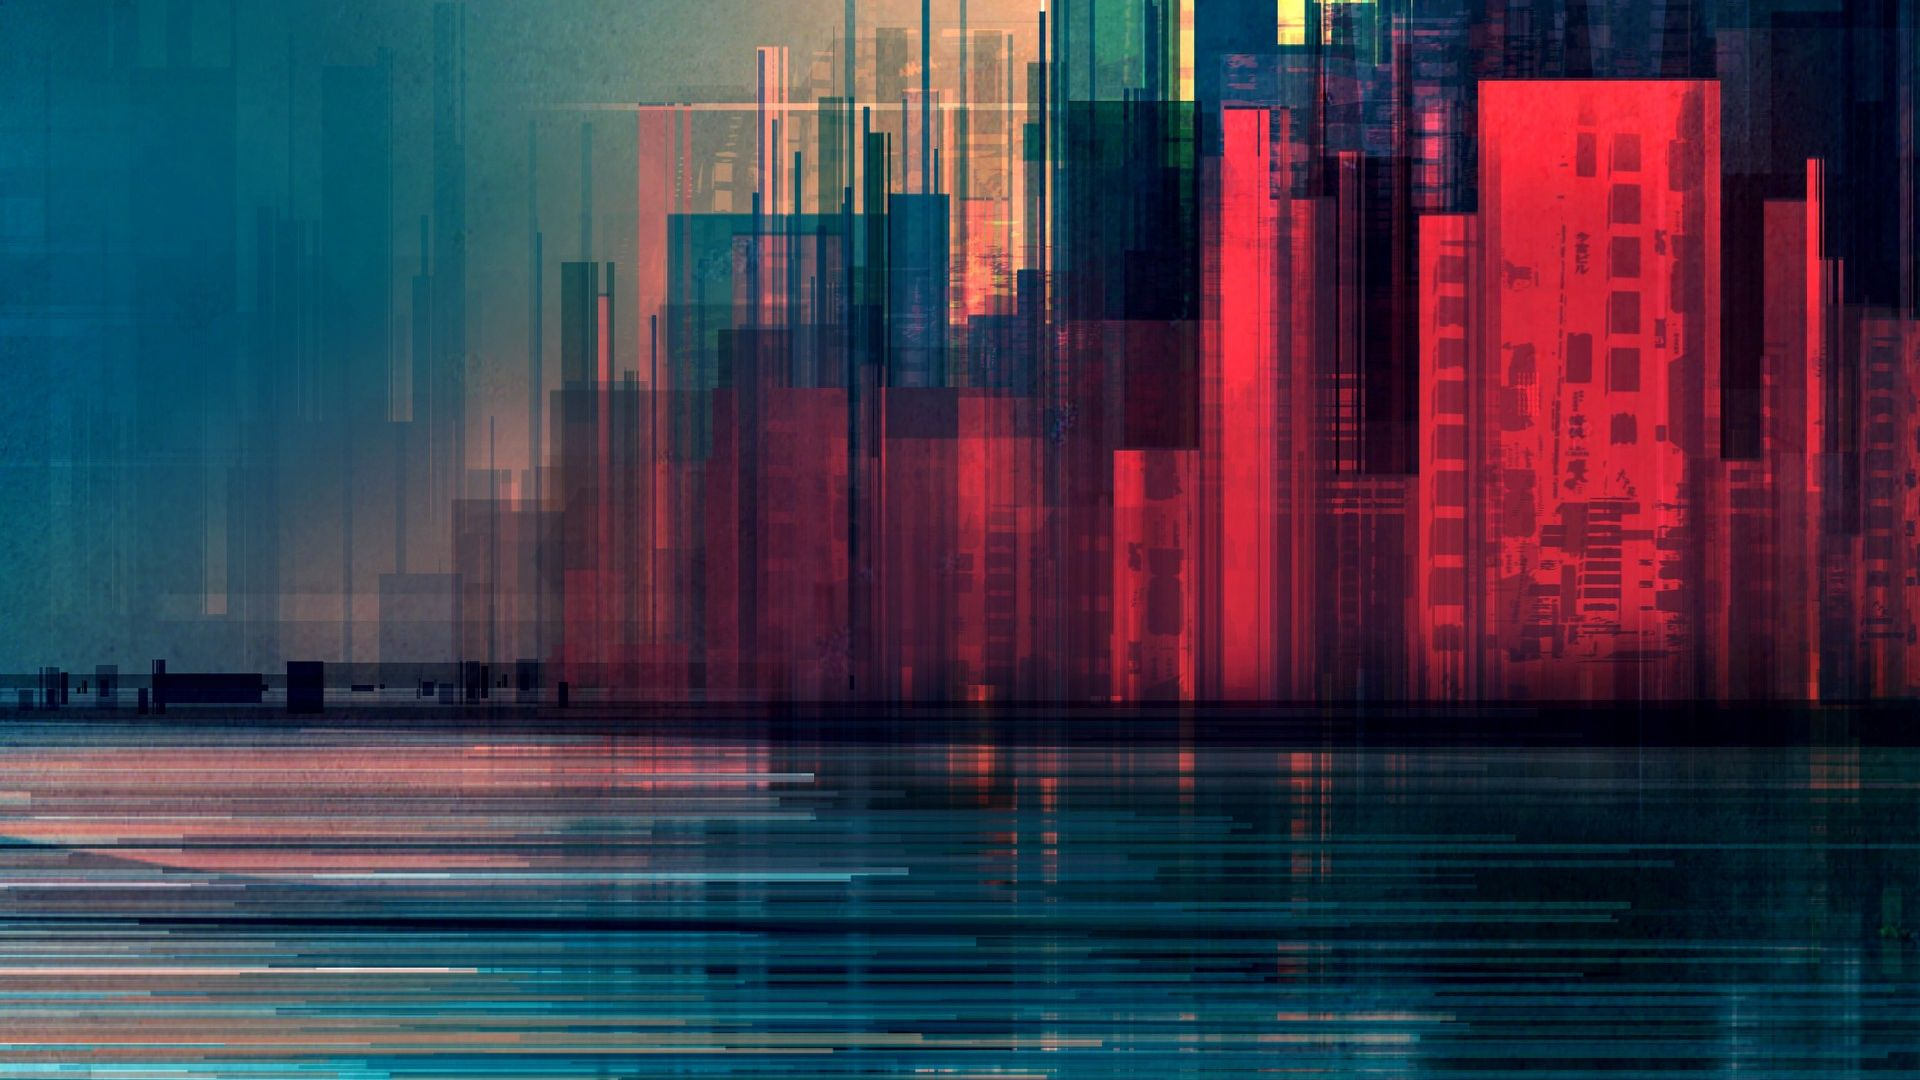 Hd Superhero Wallpapers For Pc Desktop Wallpaper Glitch Art City Abstract Hd Image